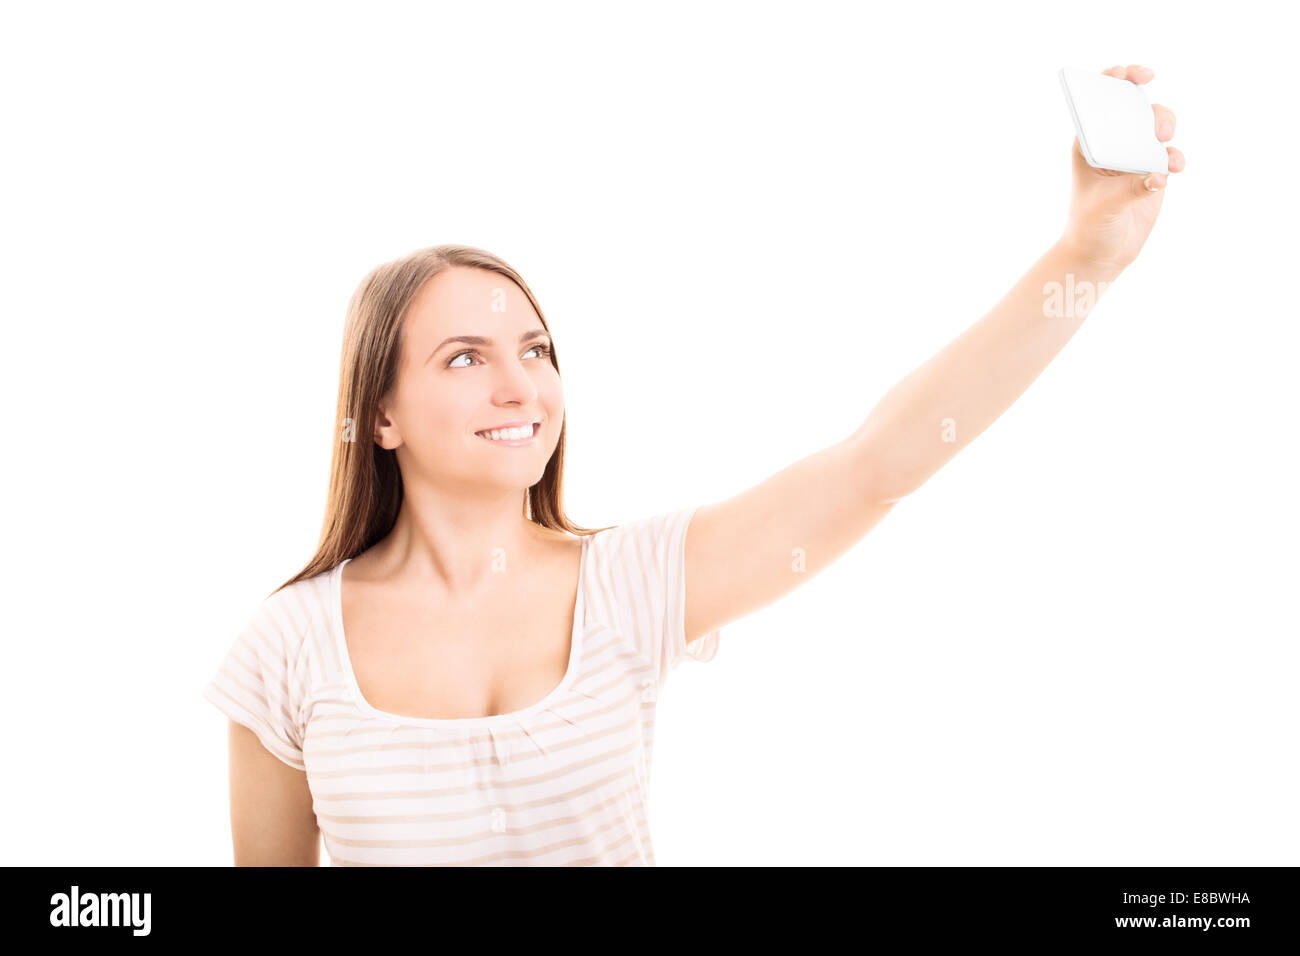 Young girl making a photograph of herself isolated on white background - Stock Image